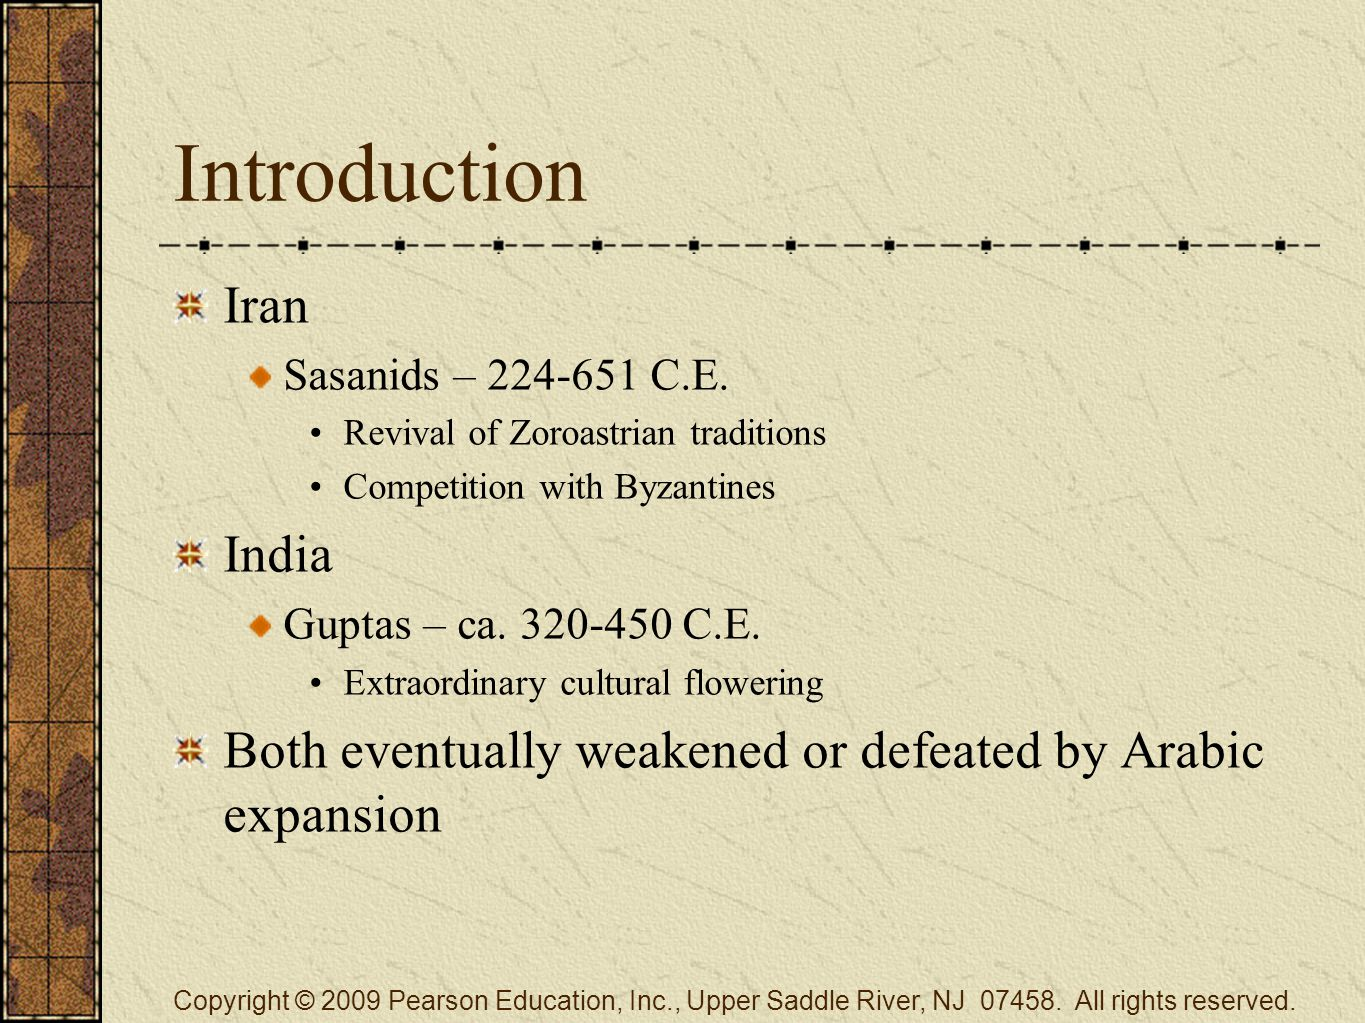 Introduction Iran Sasanids – 224-651 C.E. Revival of Zoroastrian traditions Competition with Byzantines India Guptas – ca. 320-450 C.E. Extraordinary